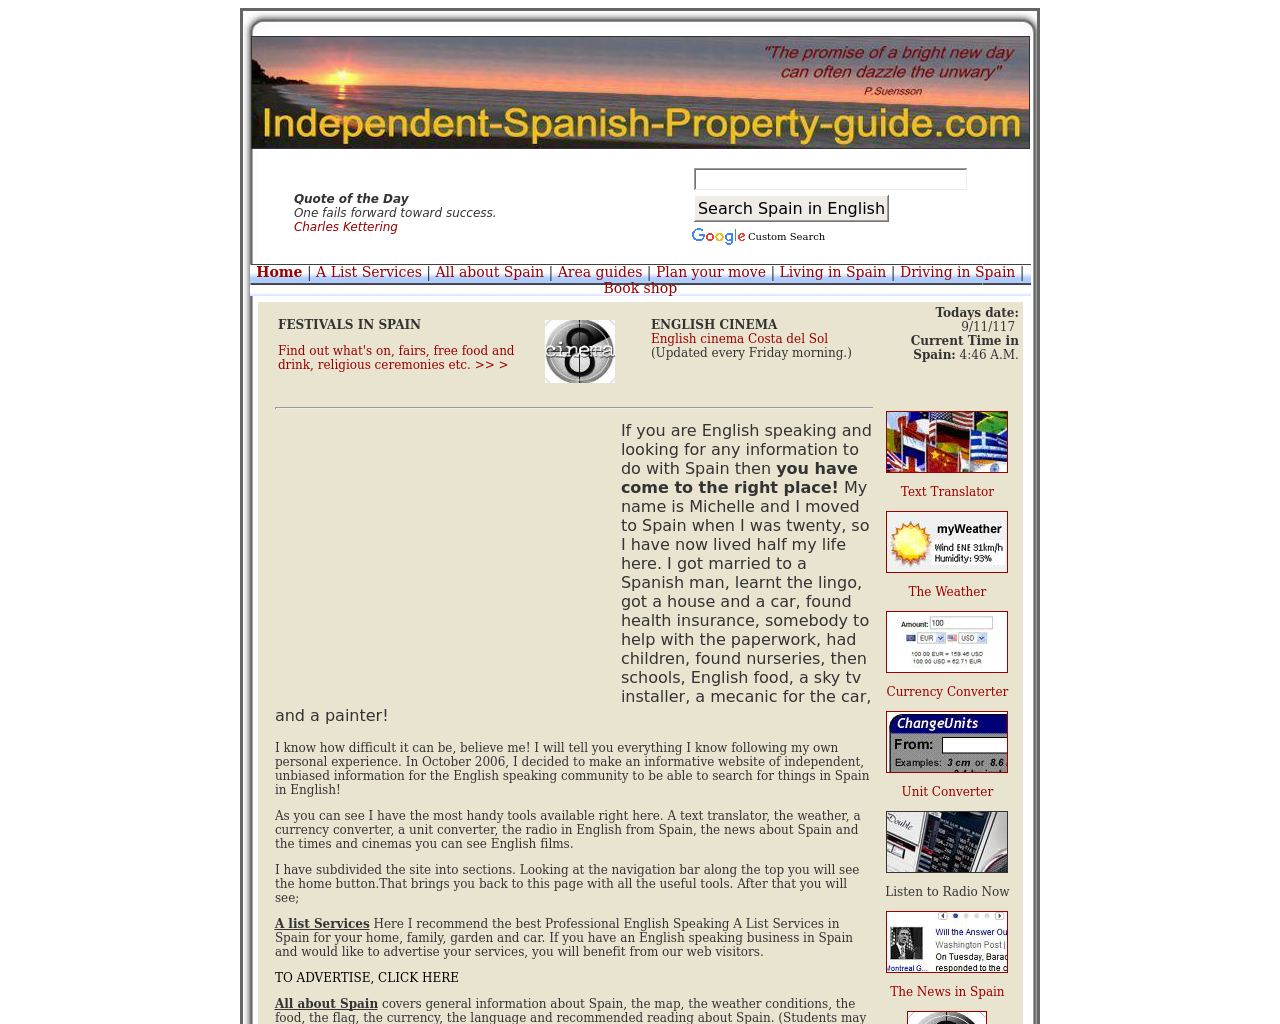 Independent-Spanish-Property-Guide.com-Advertising-Reviews-Pricing